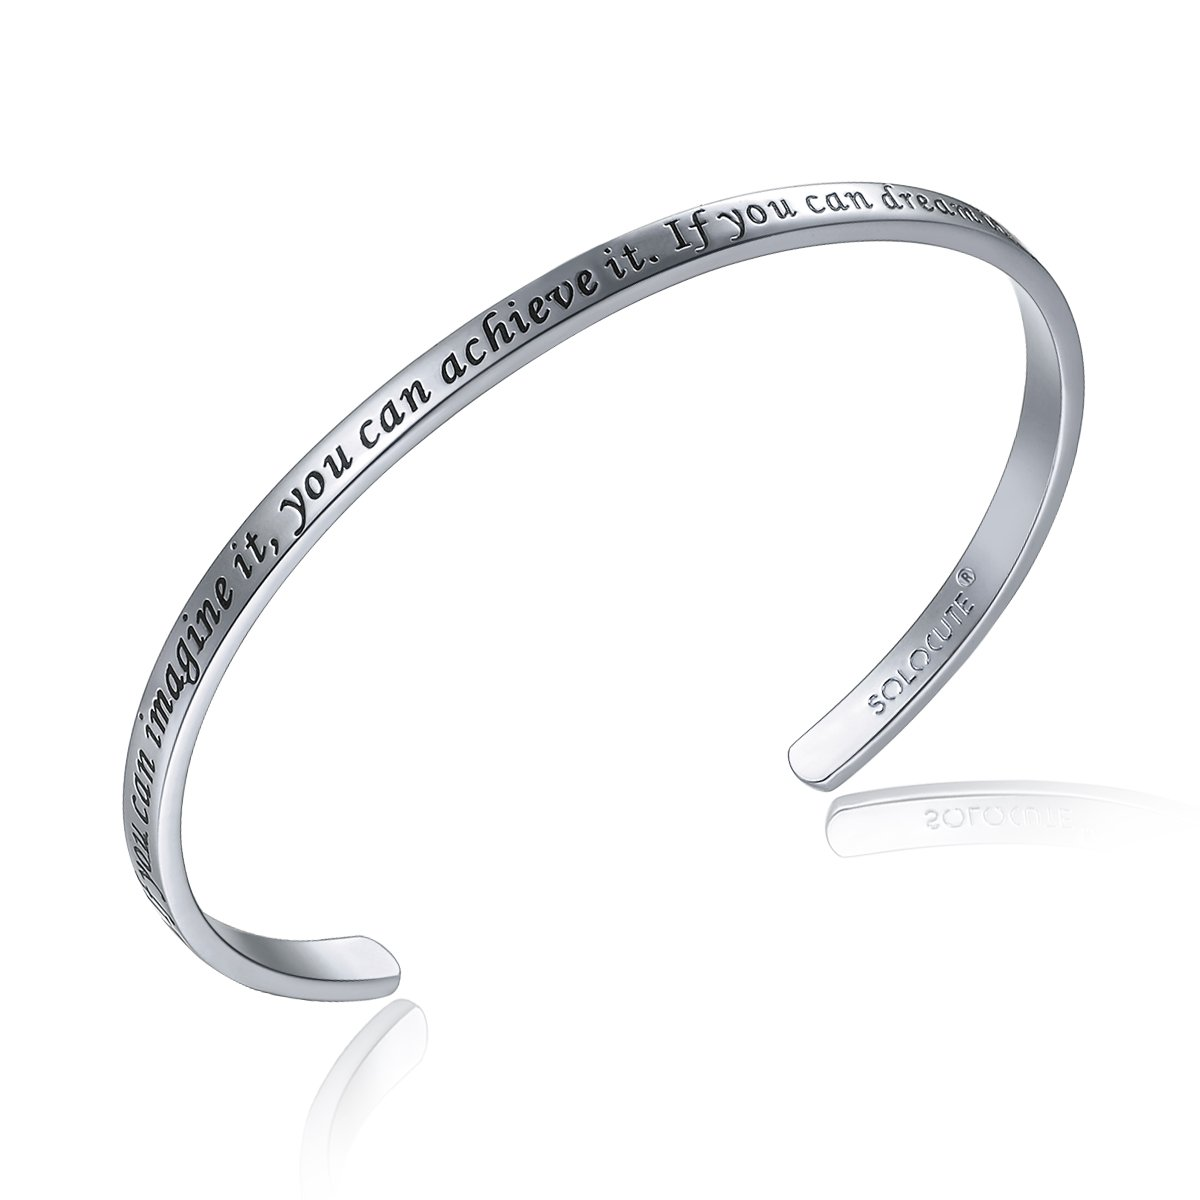 SOLOCUTE Cuff Bangle Bracelet EngravedIf You Can Imagine It, You Can Achieve It. If You Can Dream It, You Can Become It Inspirational Jewelry SC016RG